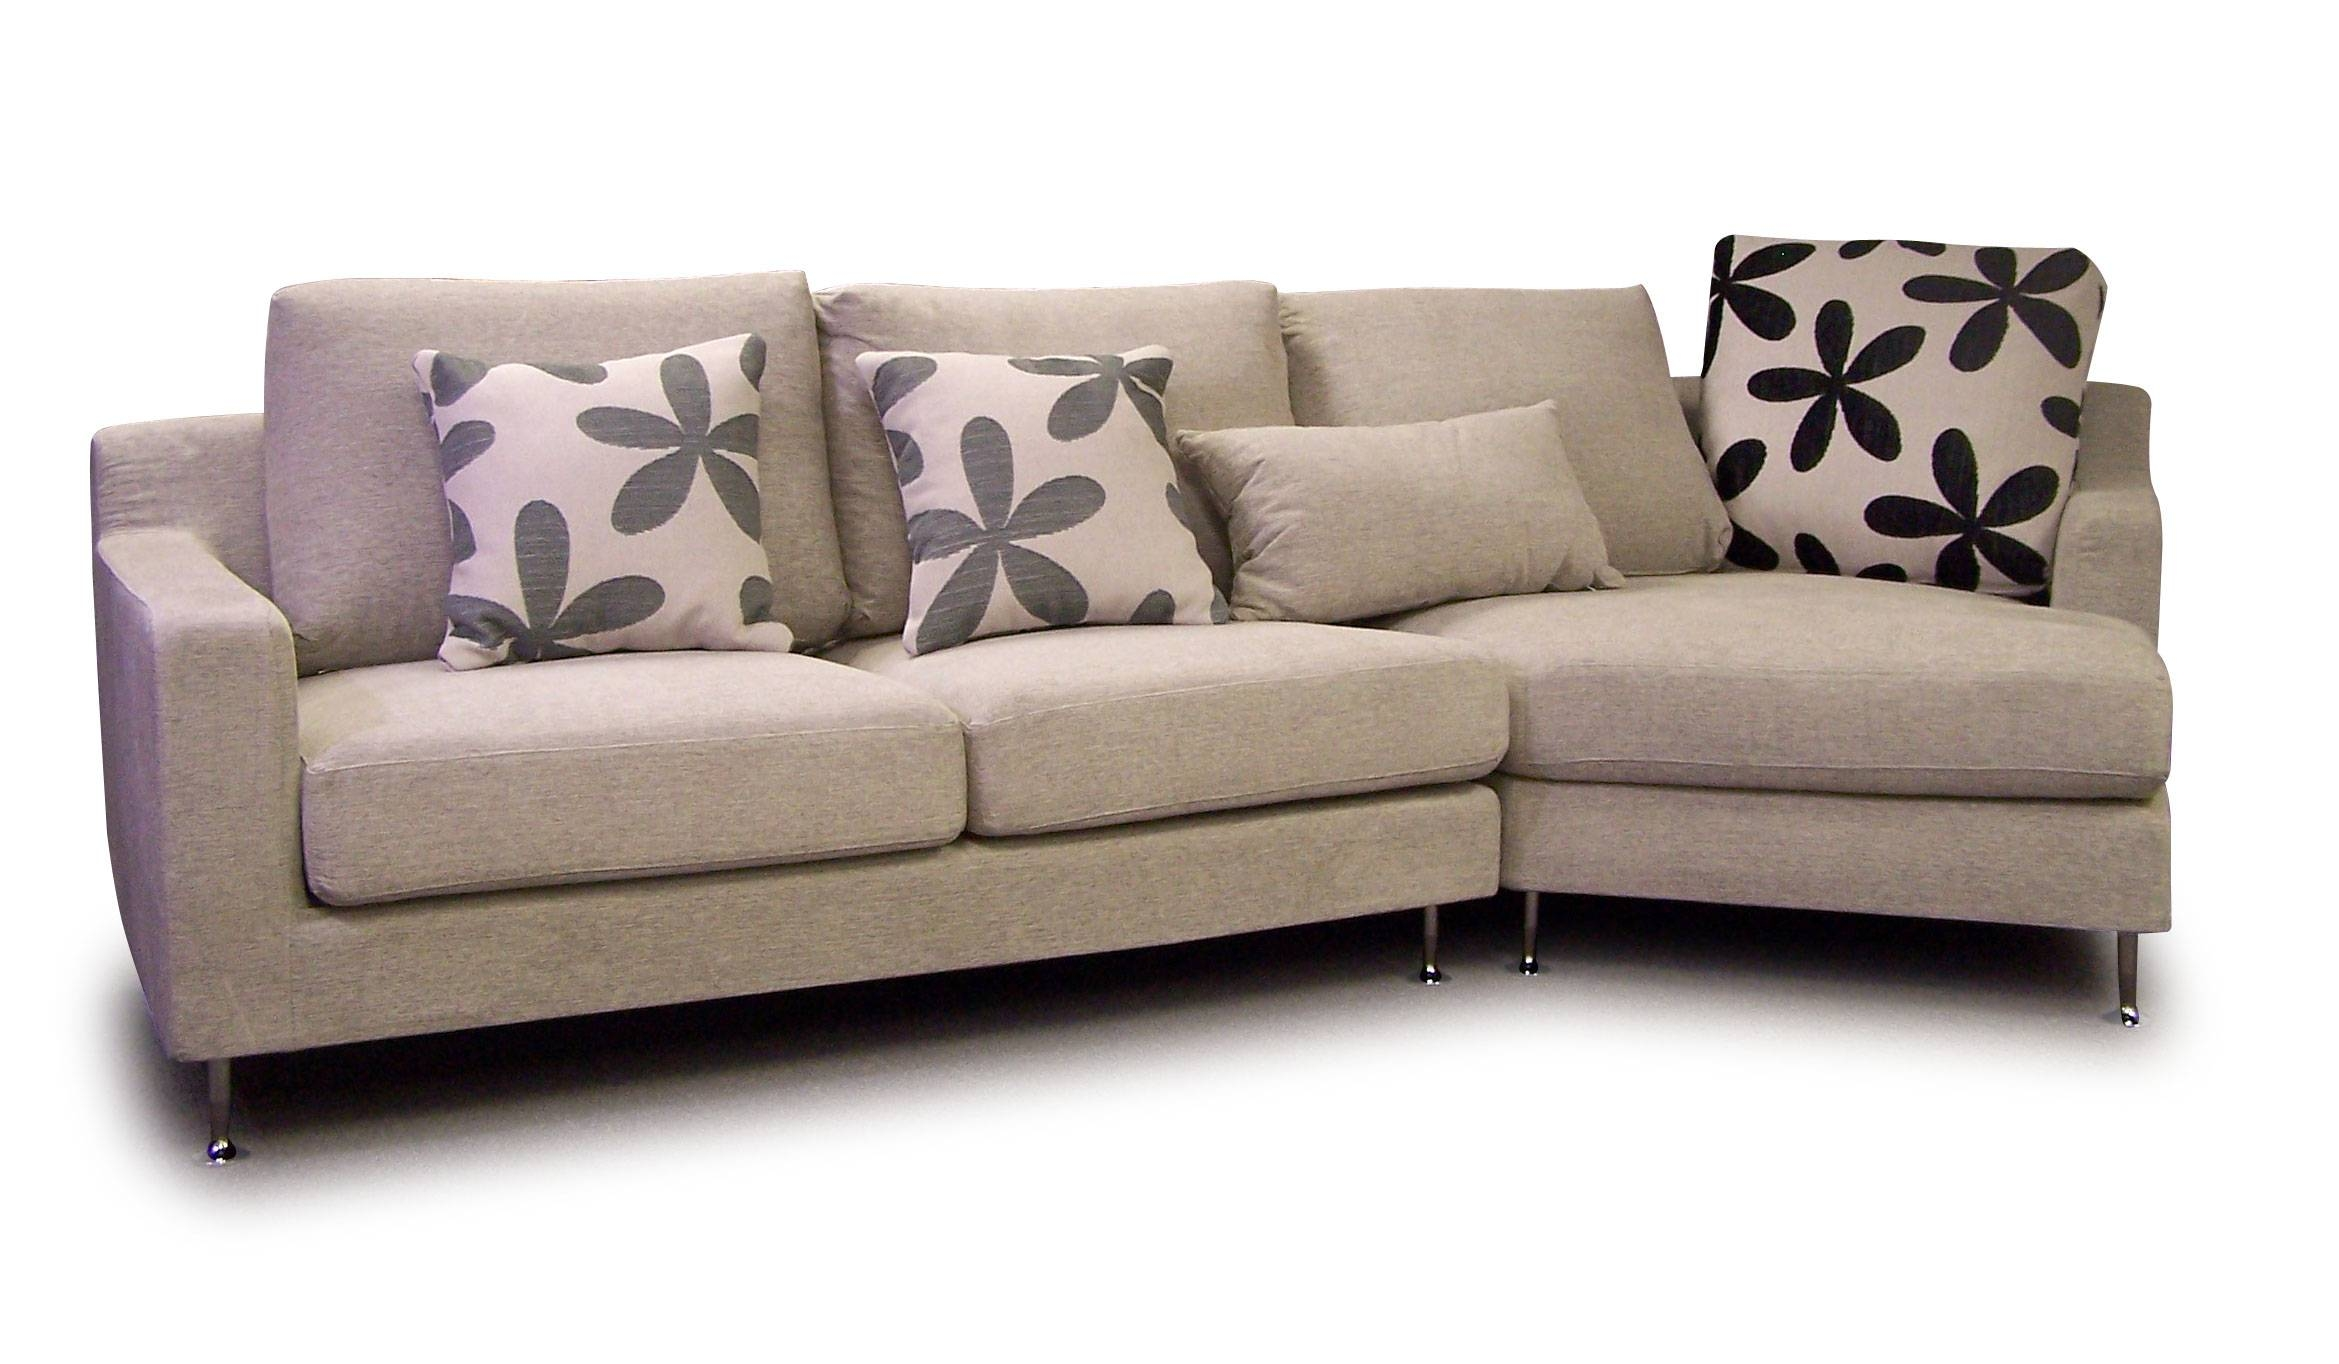 Fabric Sofa Designs intended for Leather and Cloth Sofa (Image 6 of 25)